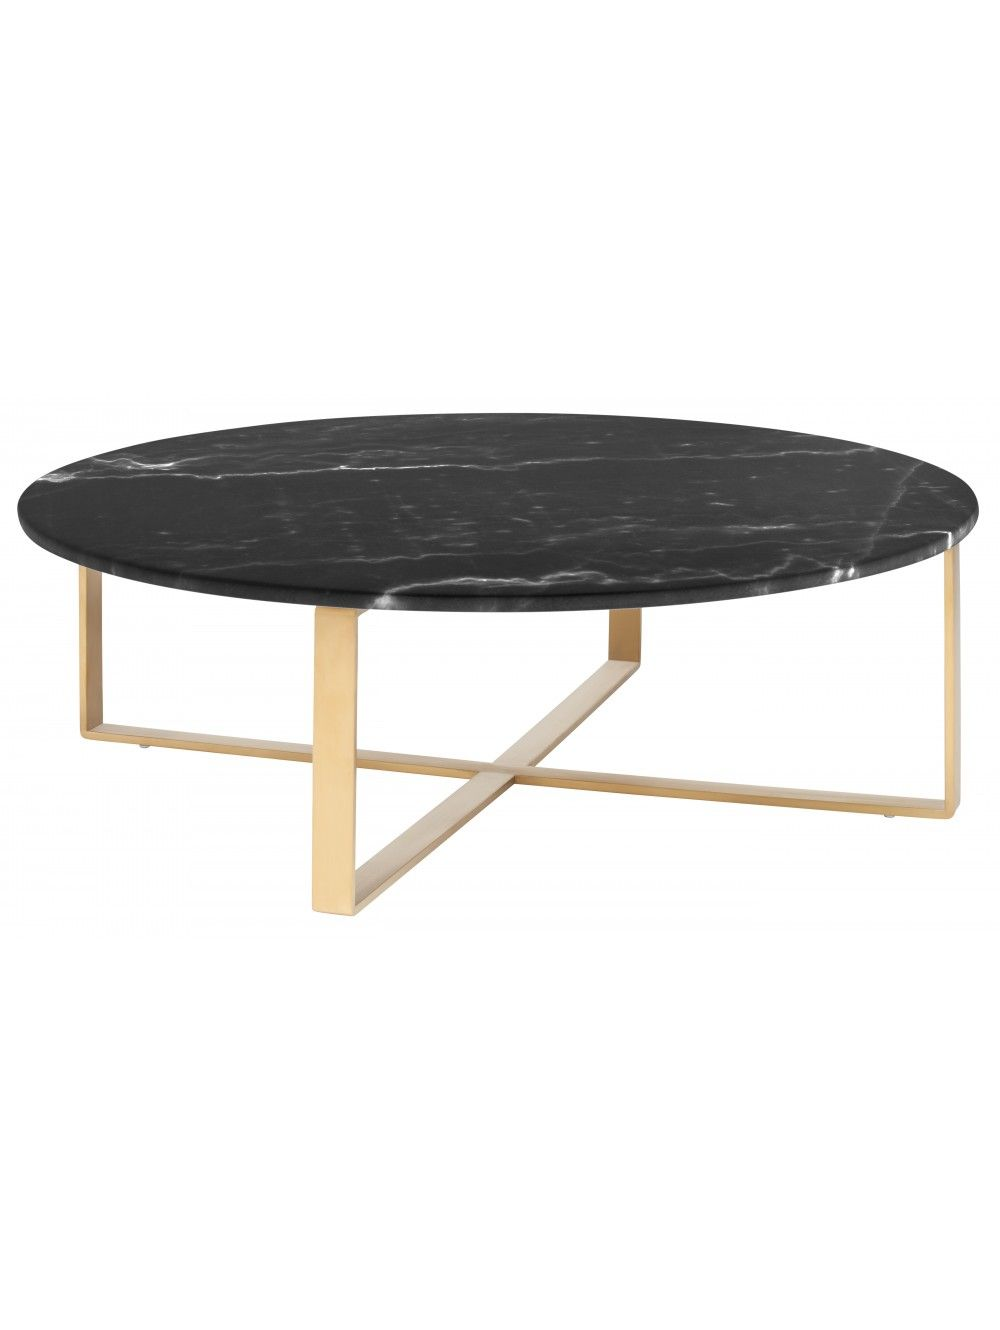 Allie Coffee Table, Black Marble